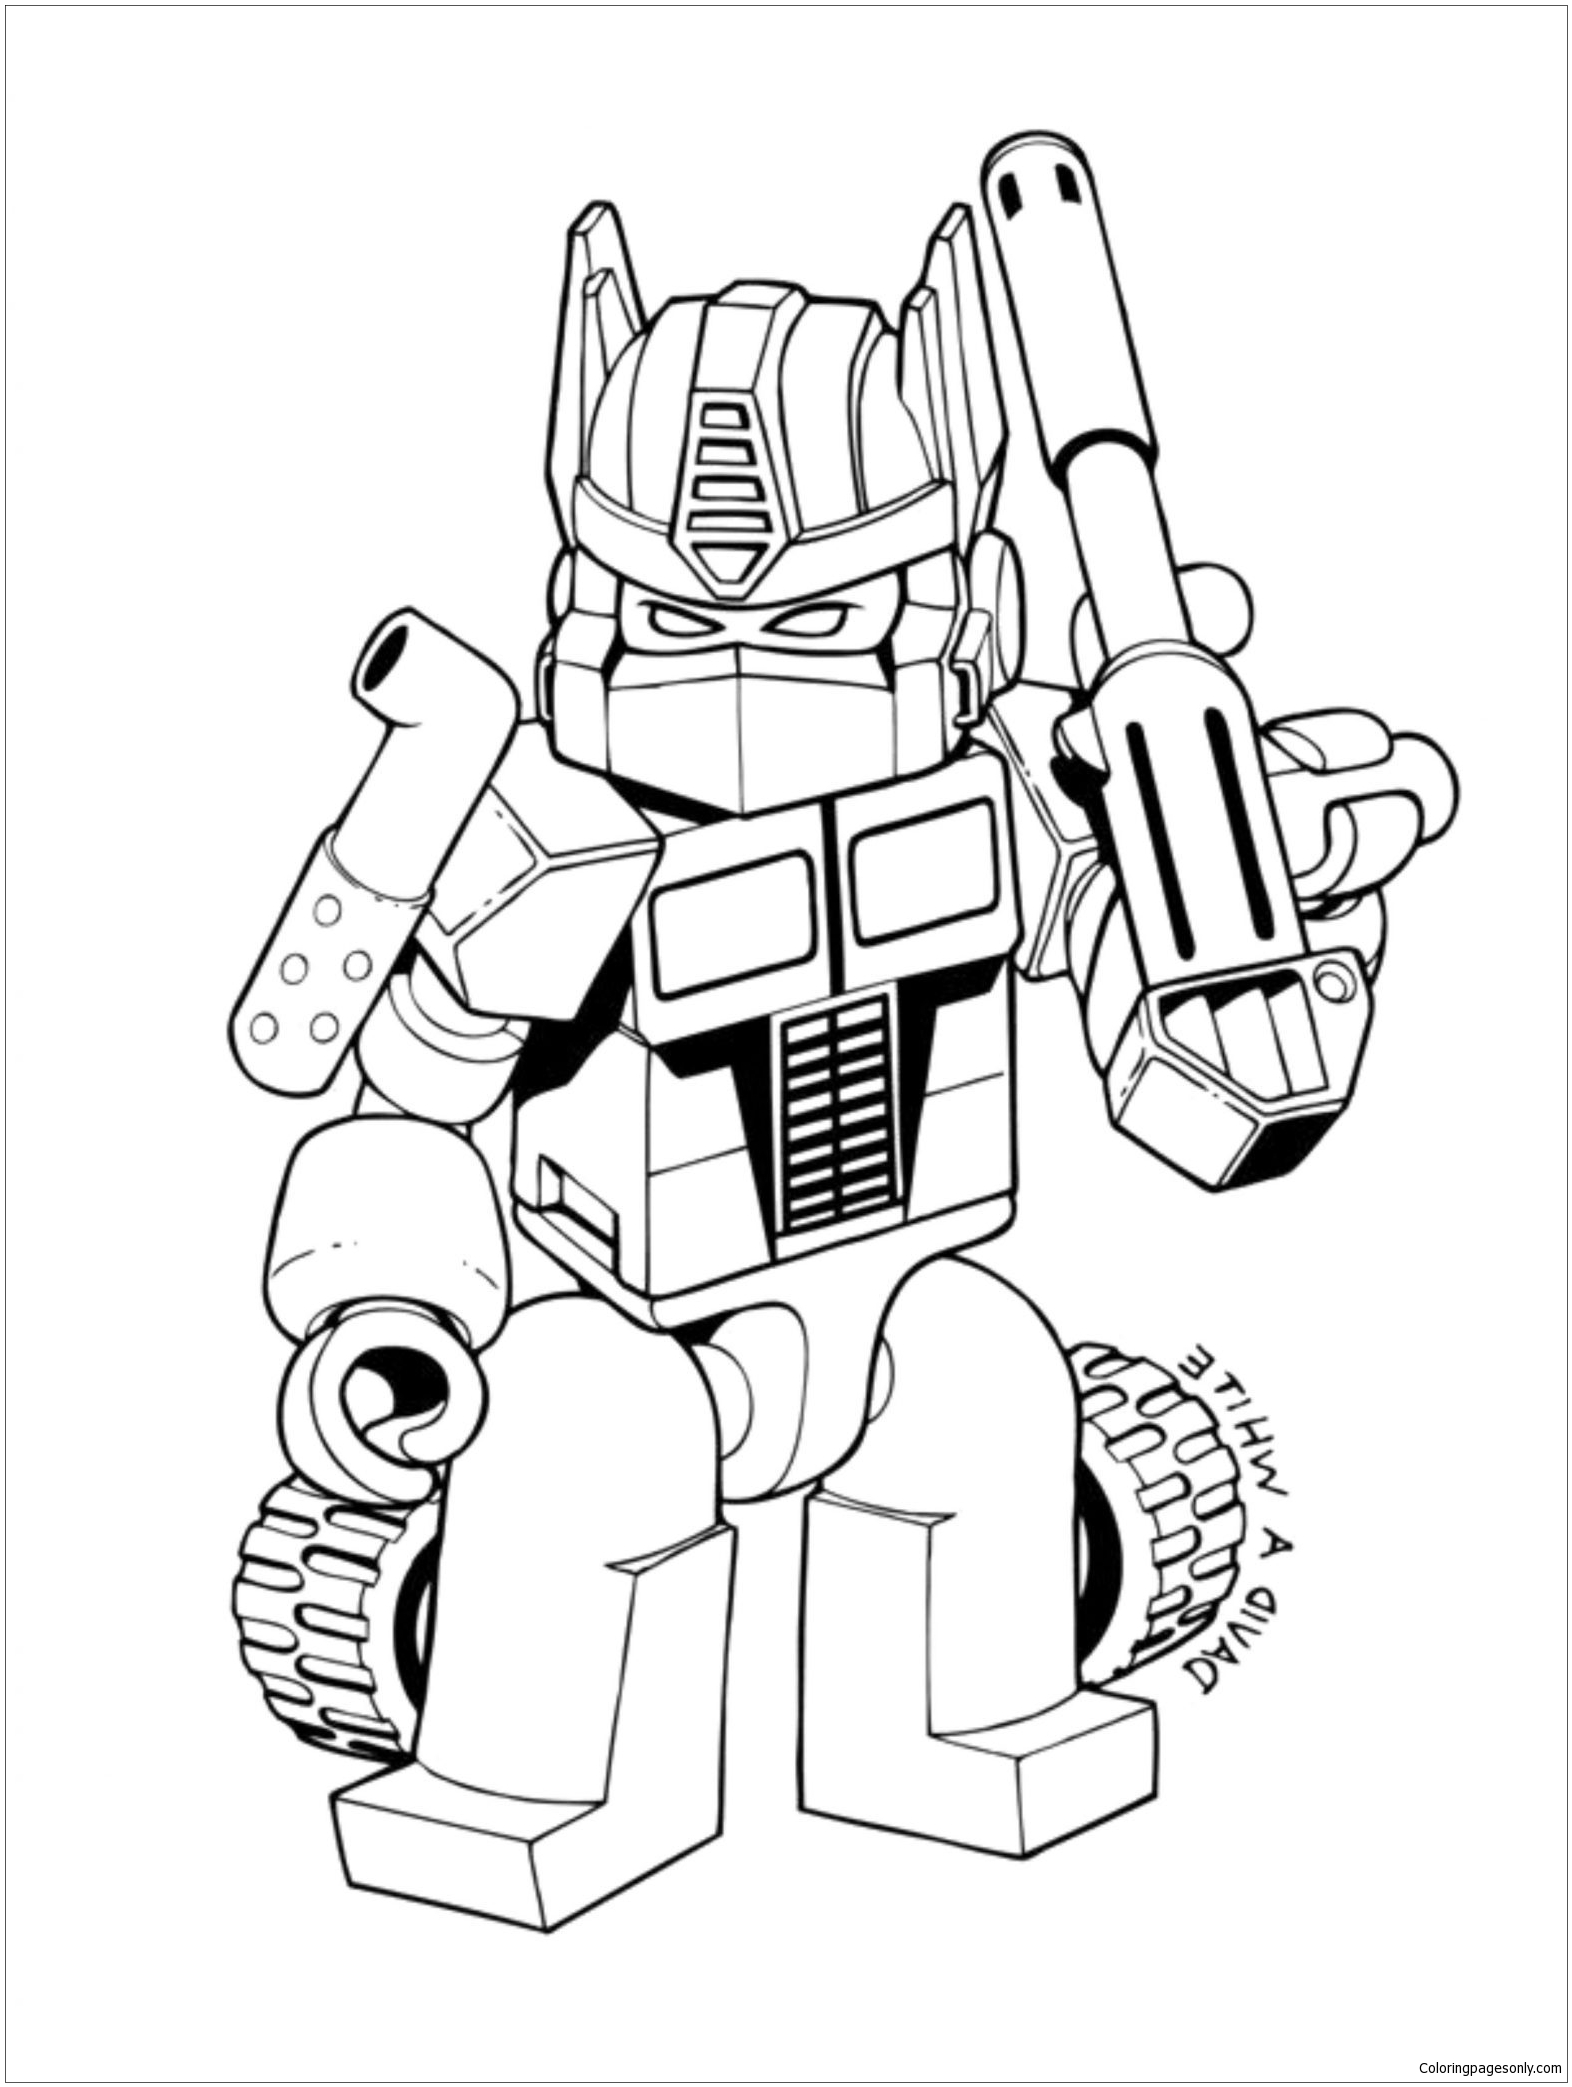 Lego Transformers Coloring Page Free Coloring Pages Online